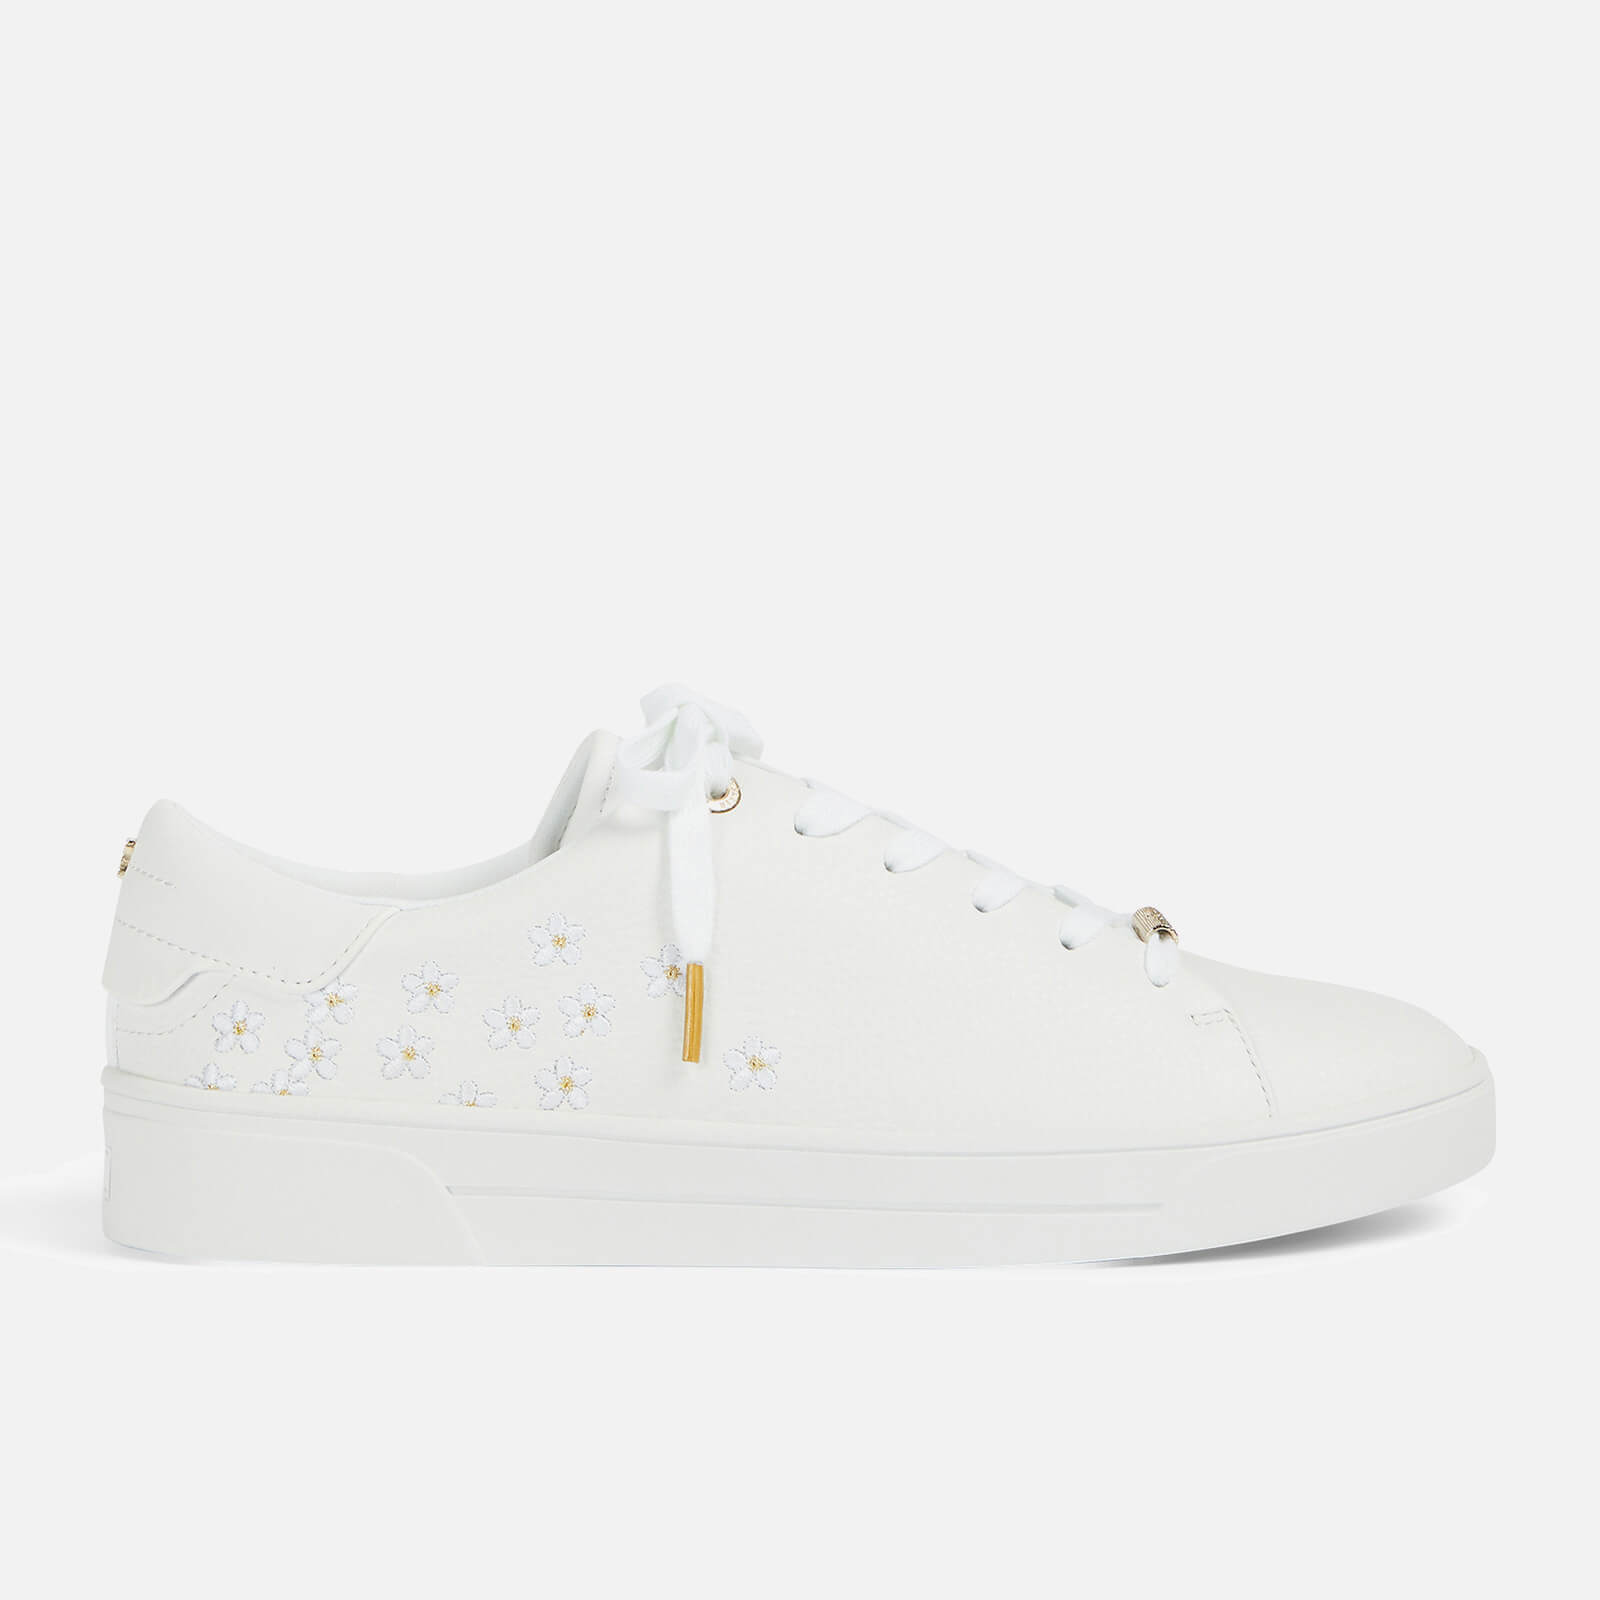 Ted Baker Women's Adial Cupsole Trainers - White - UK 3